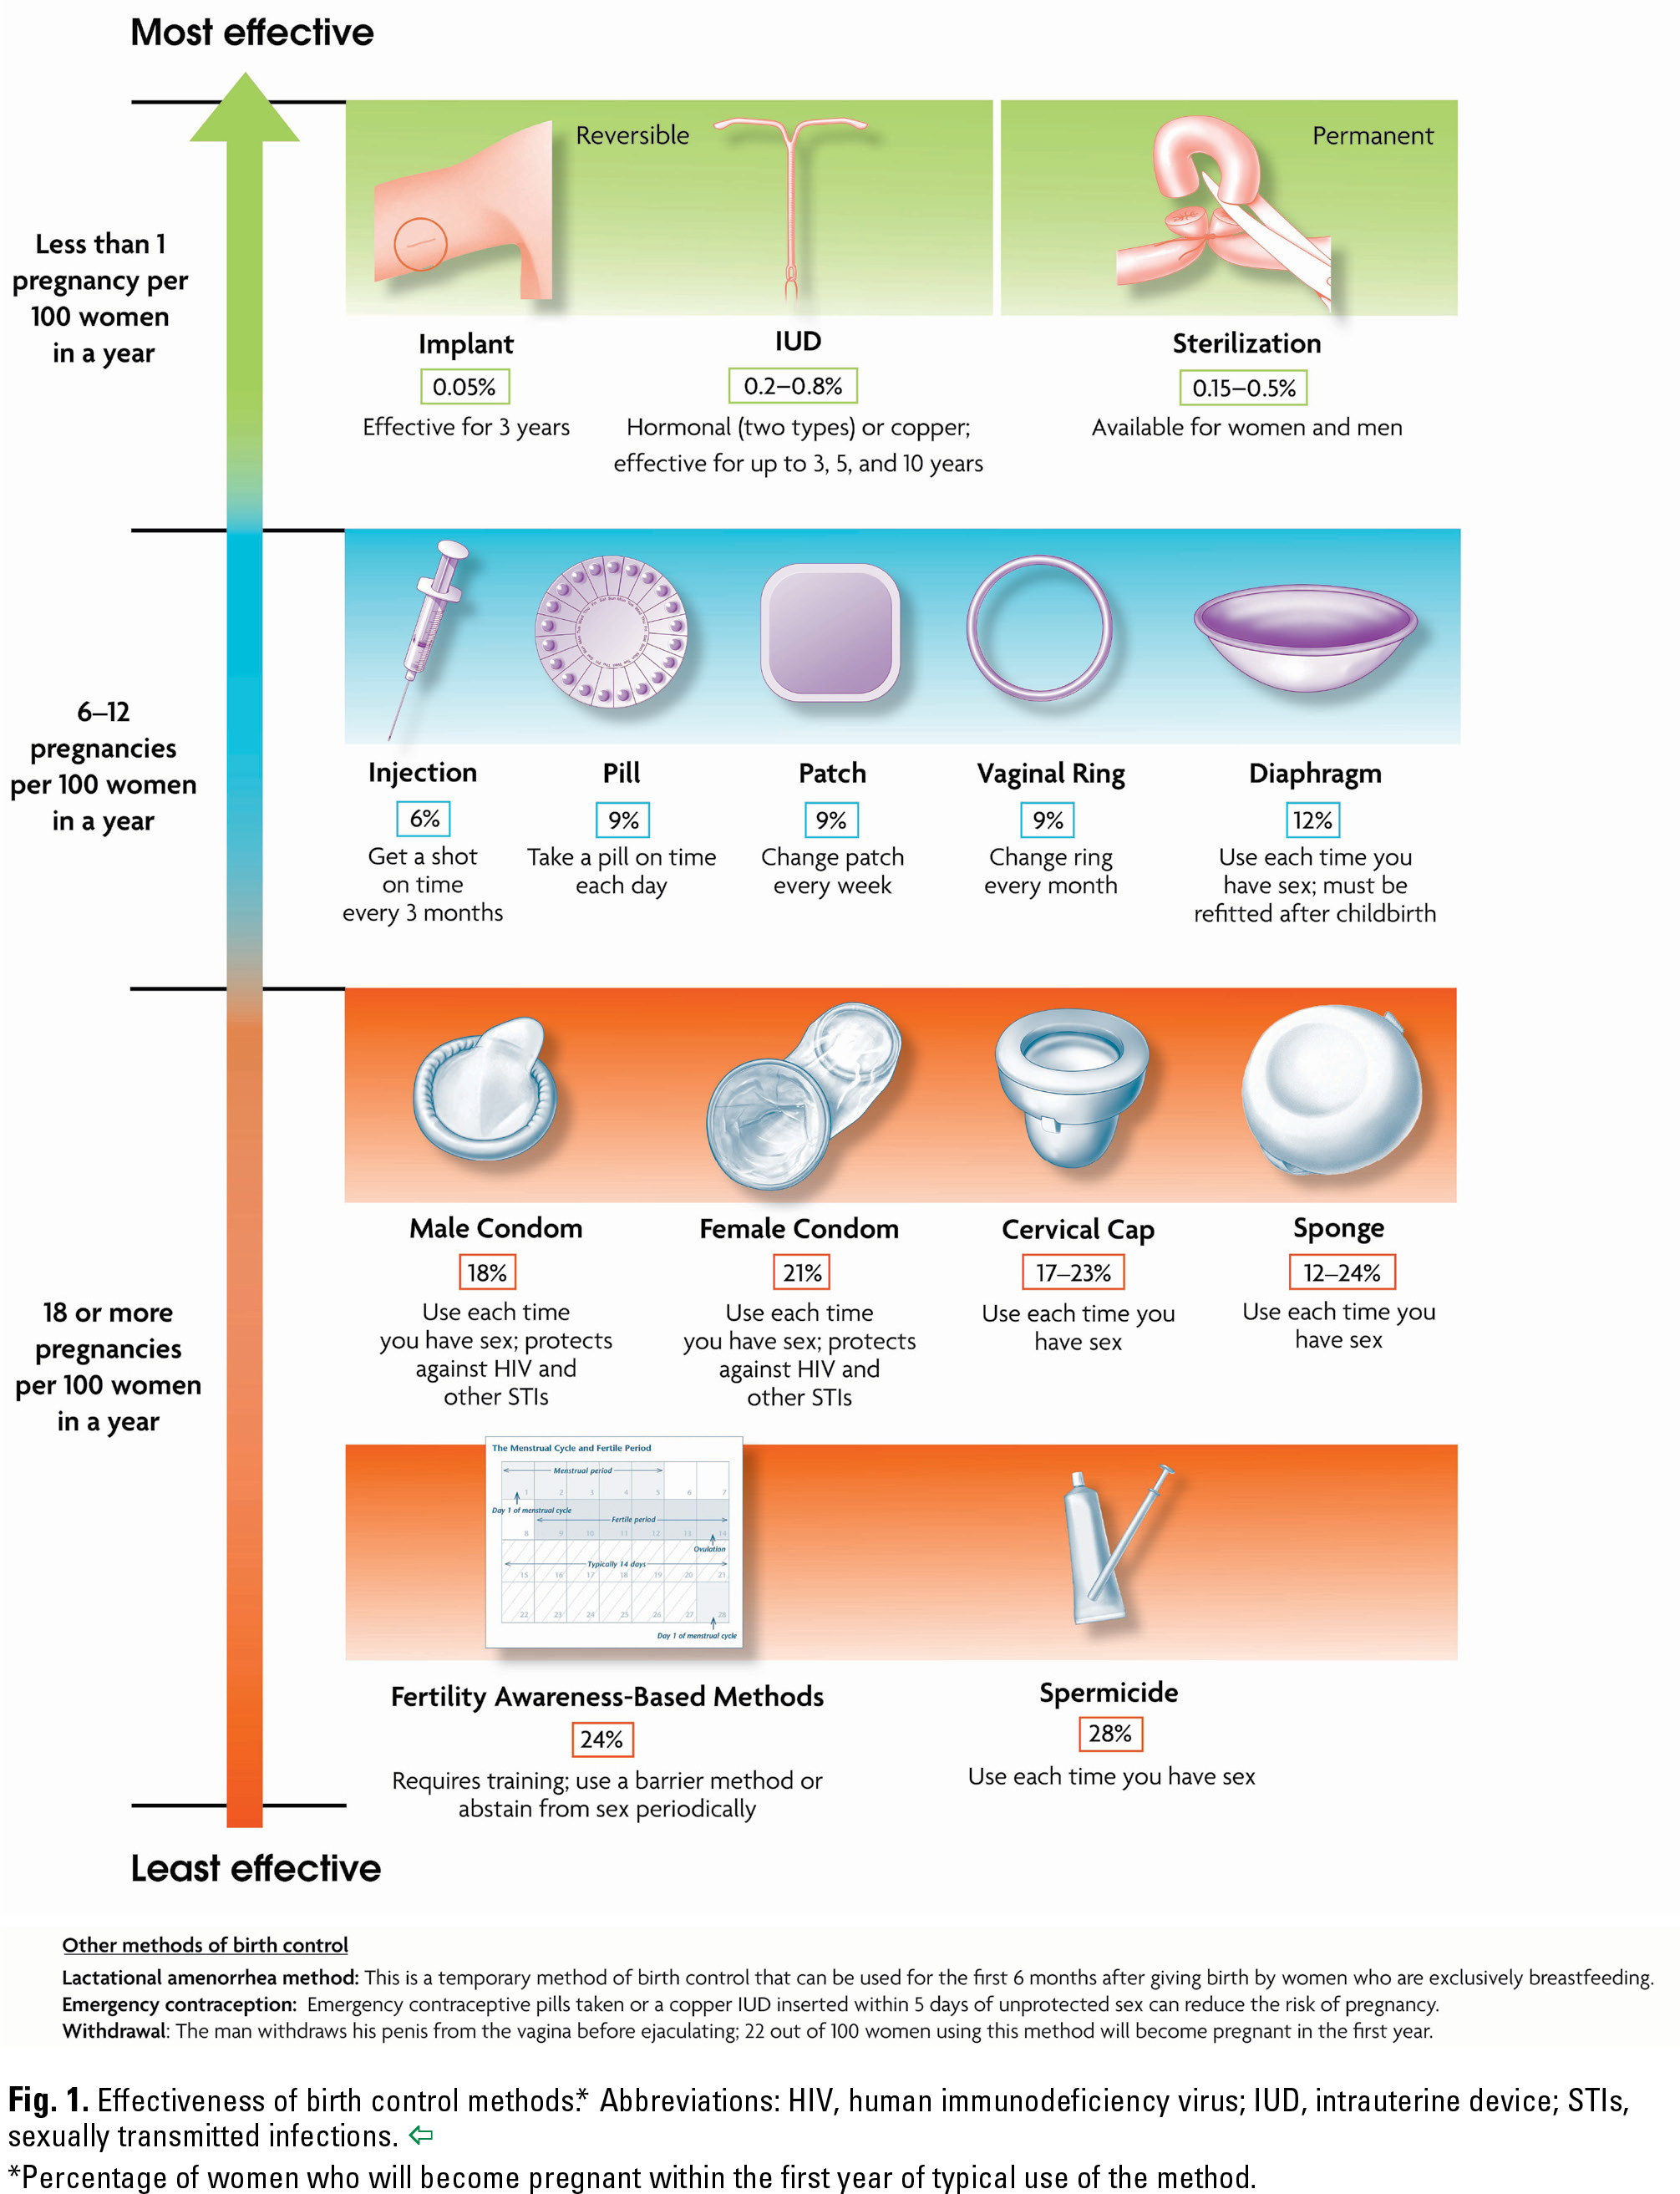 Fig. 1. Effectiveness of birth control methods.* Abbreviations: HIV, human immunodeficiency virus; IUD, intrauterine device; STIs, sexually transmitted infections